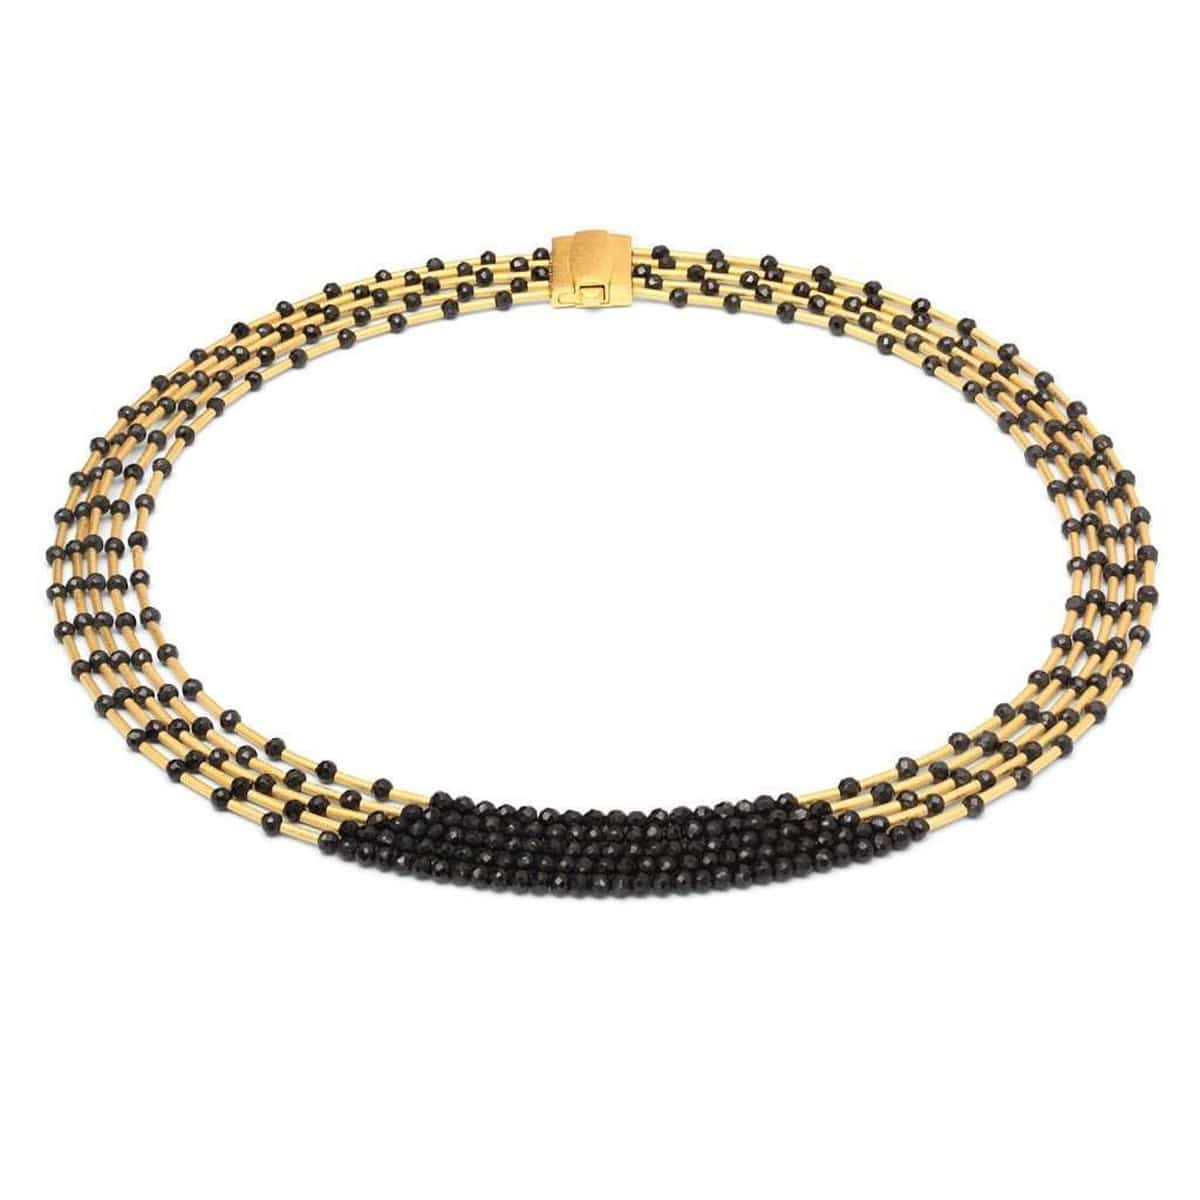 Nofrete Black Spinel Necklace - 84017496-Bernd Wolf-Renee Taylor Gallery